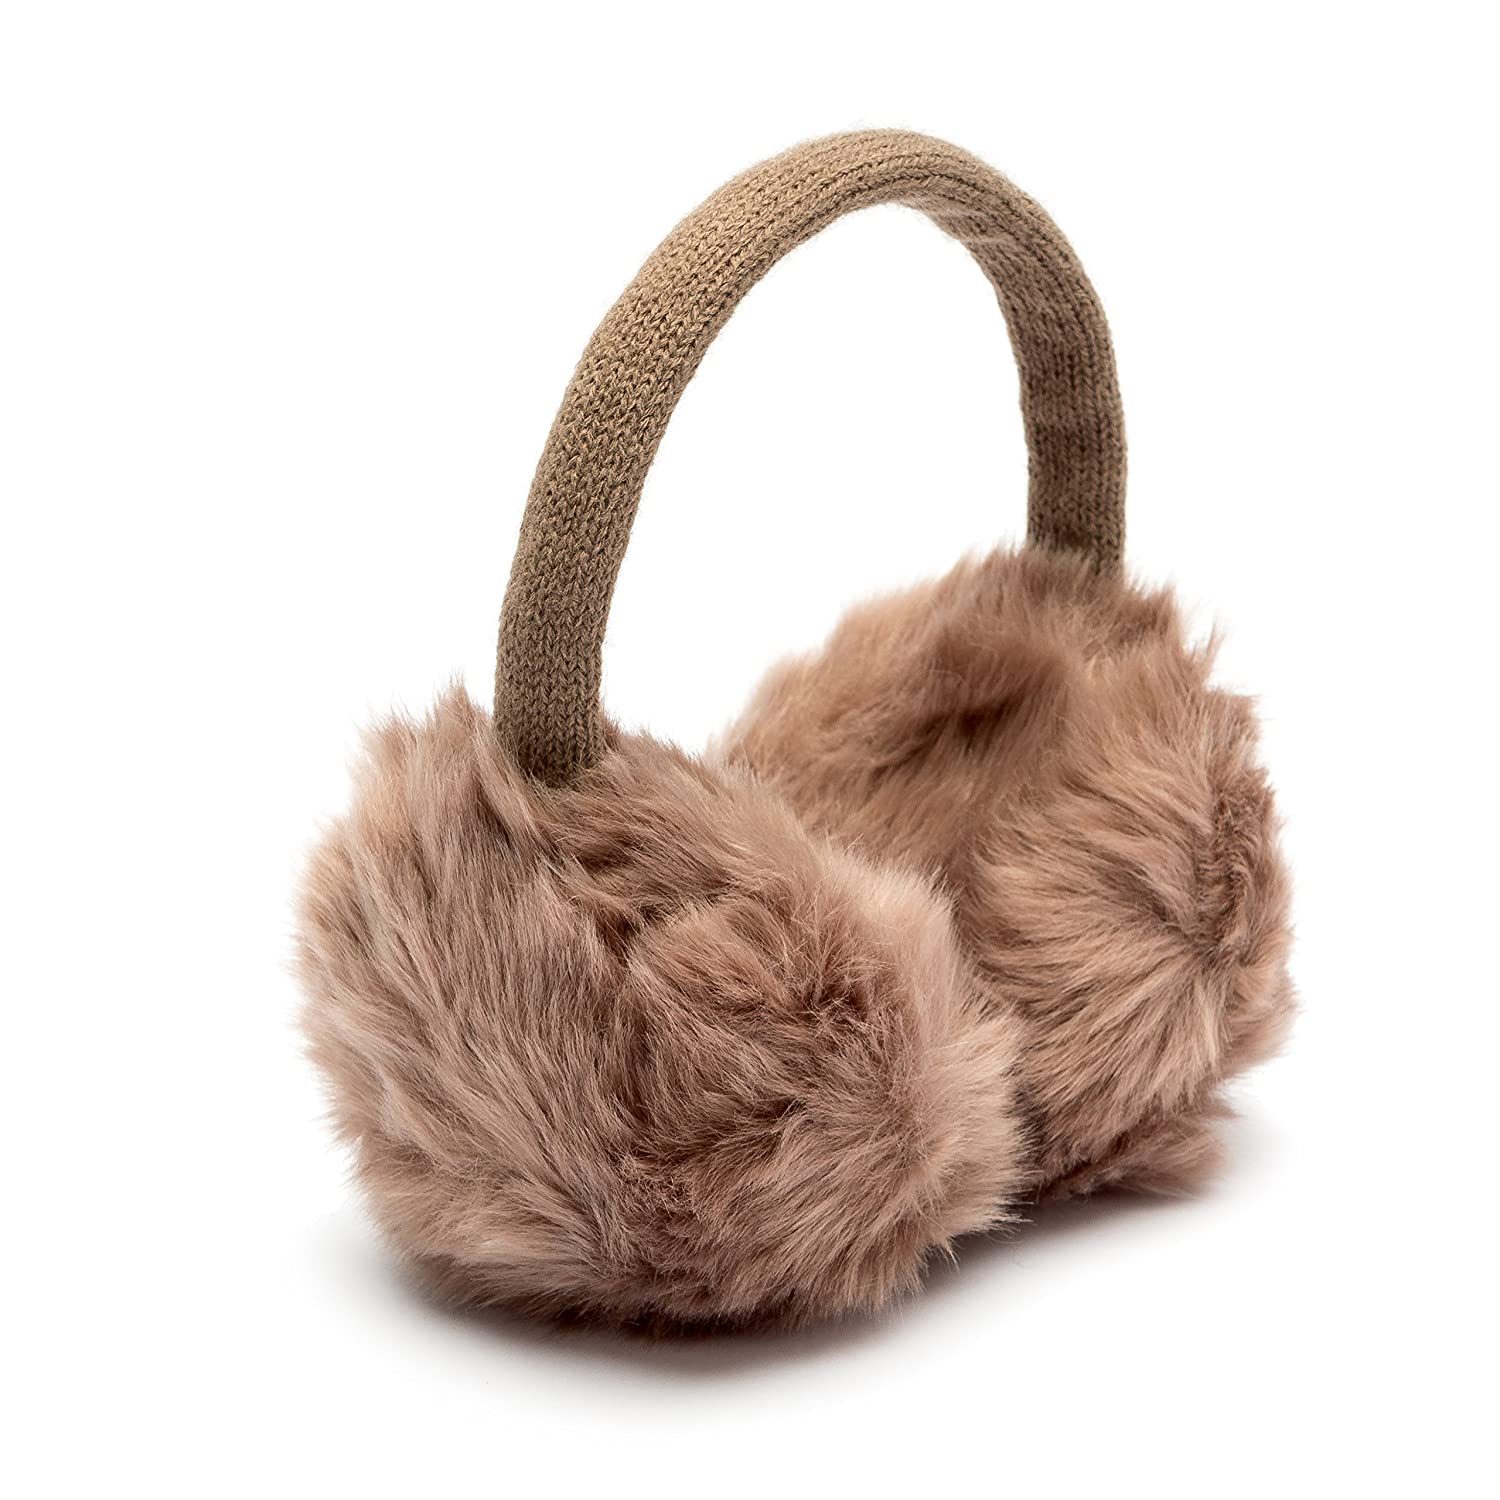 Ear warmers, muffs/earmuffs in assorted colours, by Sublevel